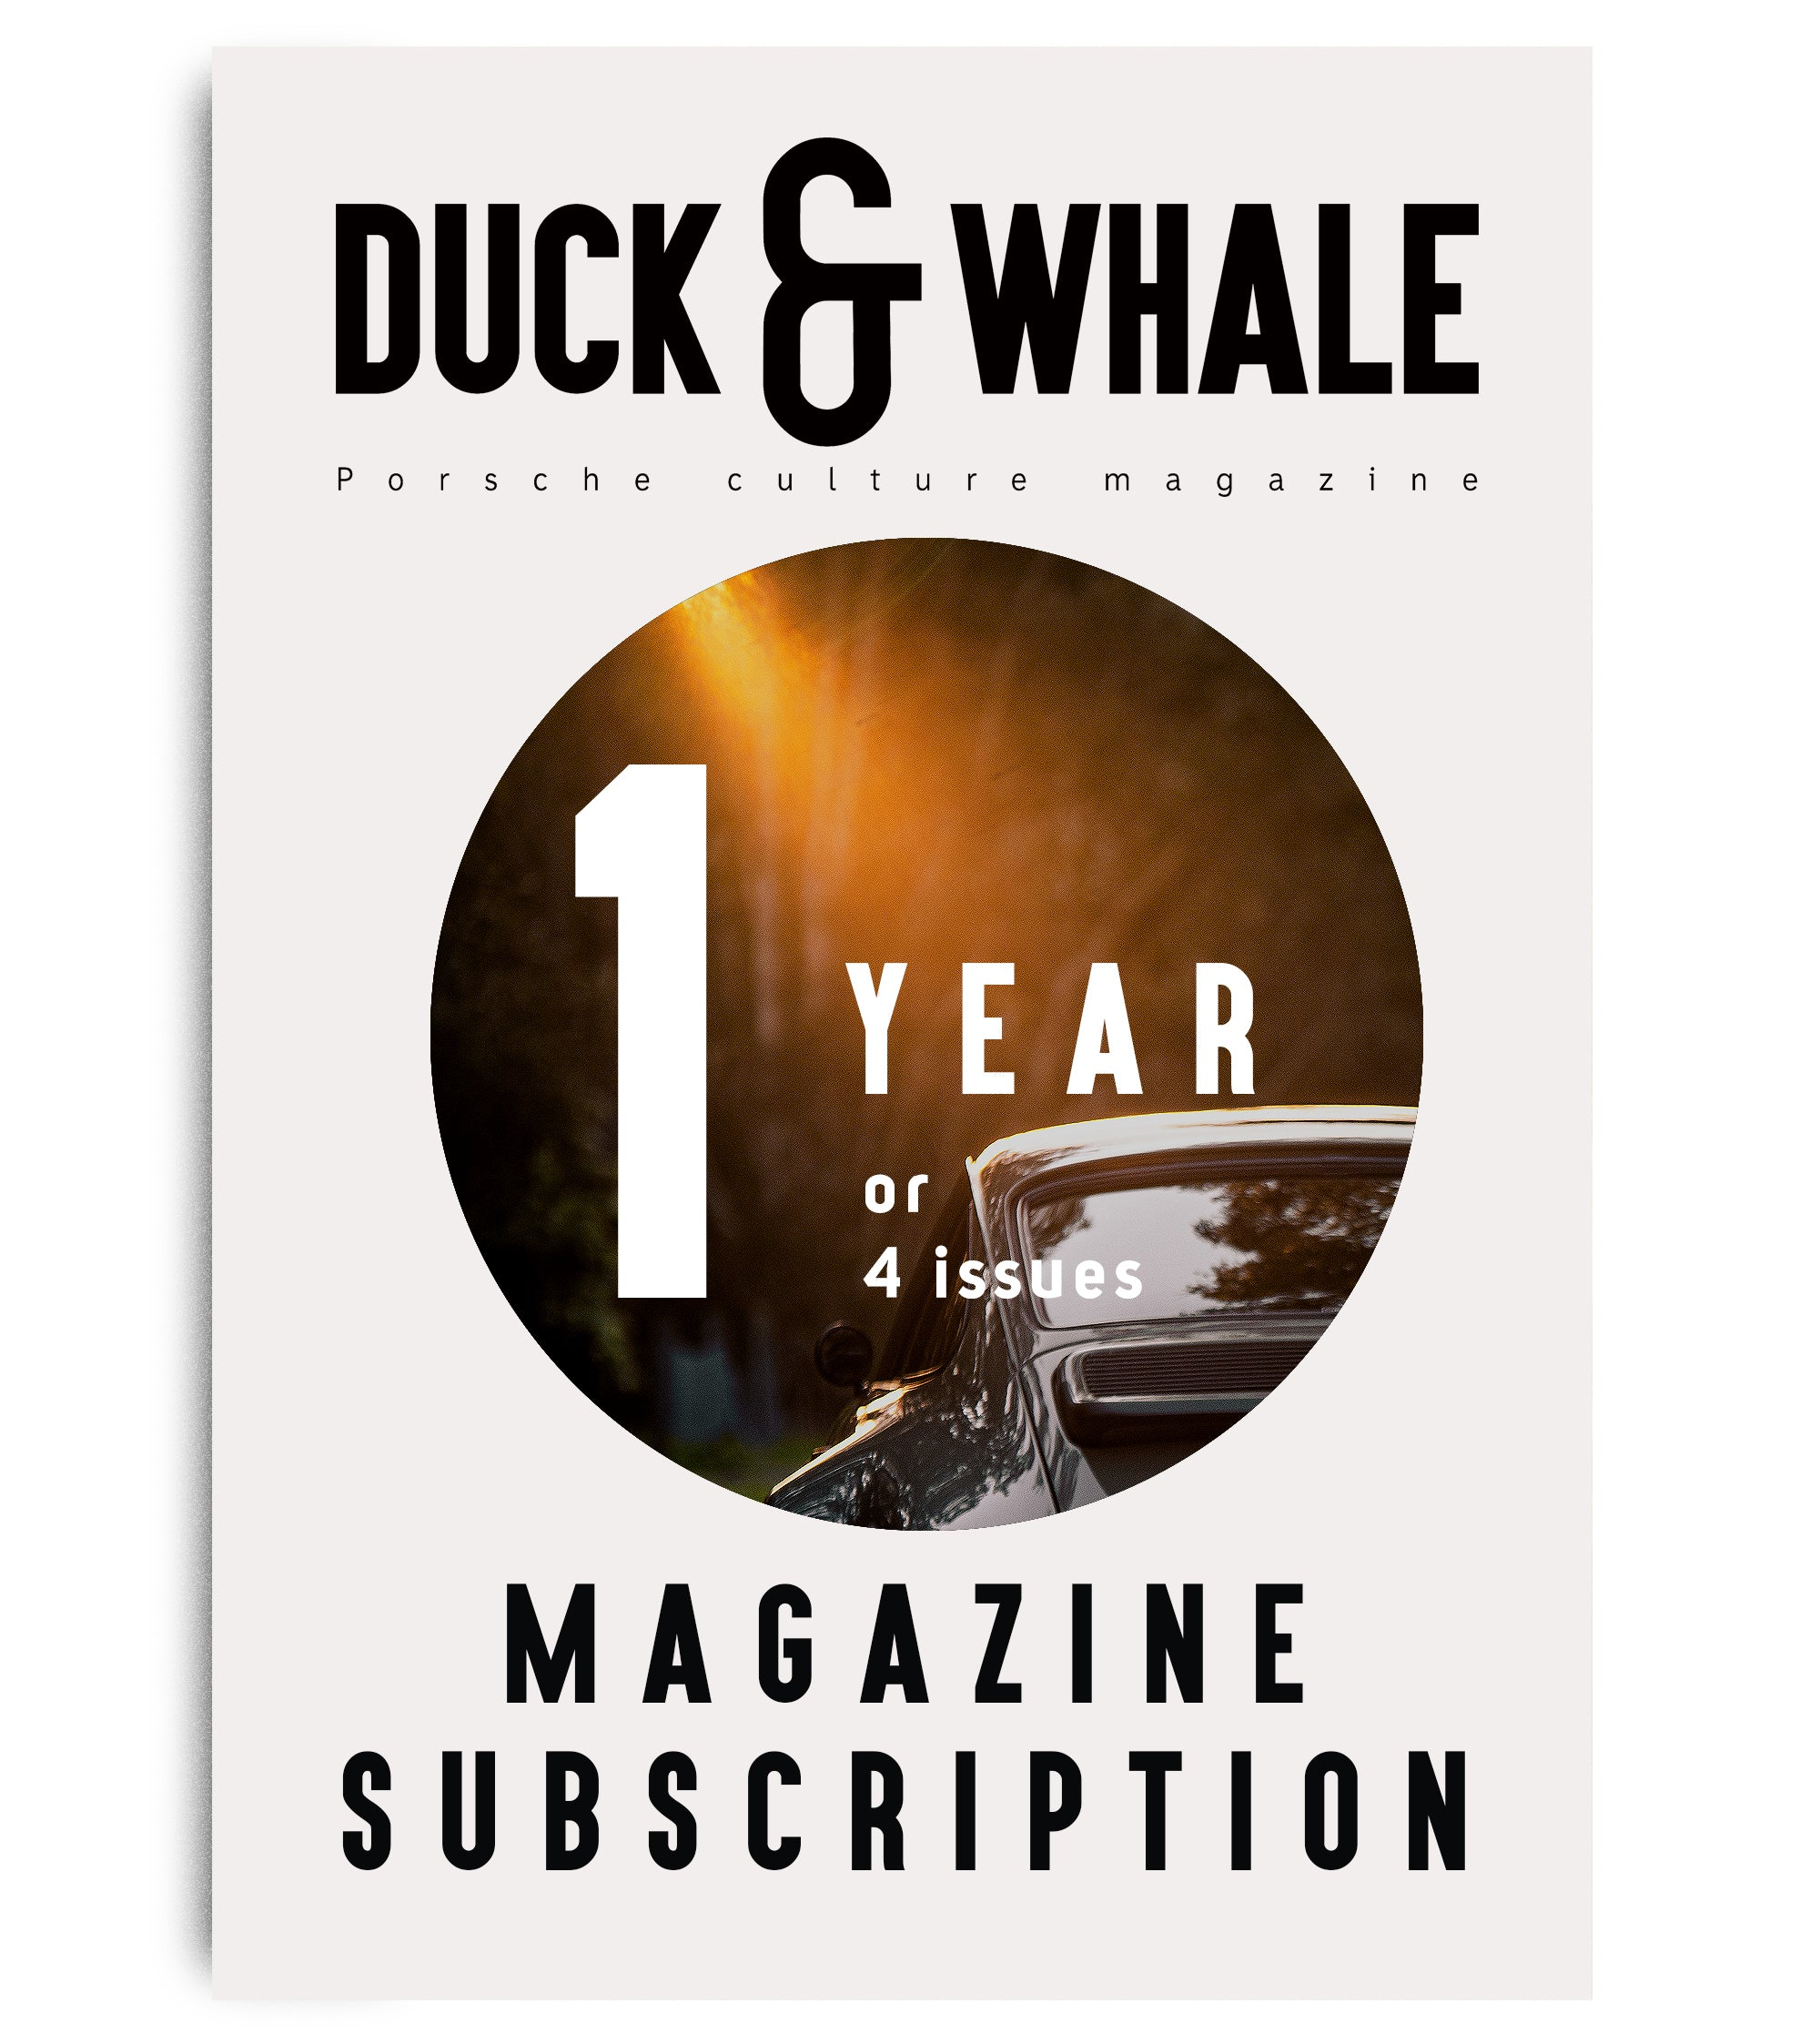 1 Year (4 issues) Duck & Whale Magazine Subscription